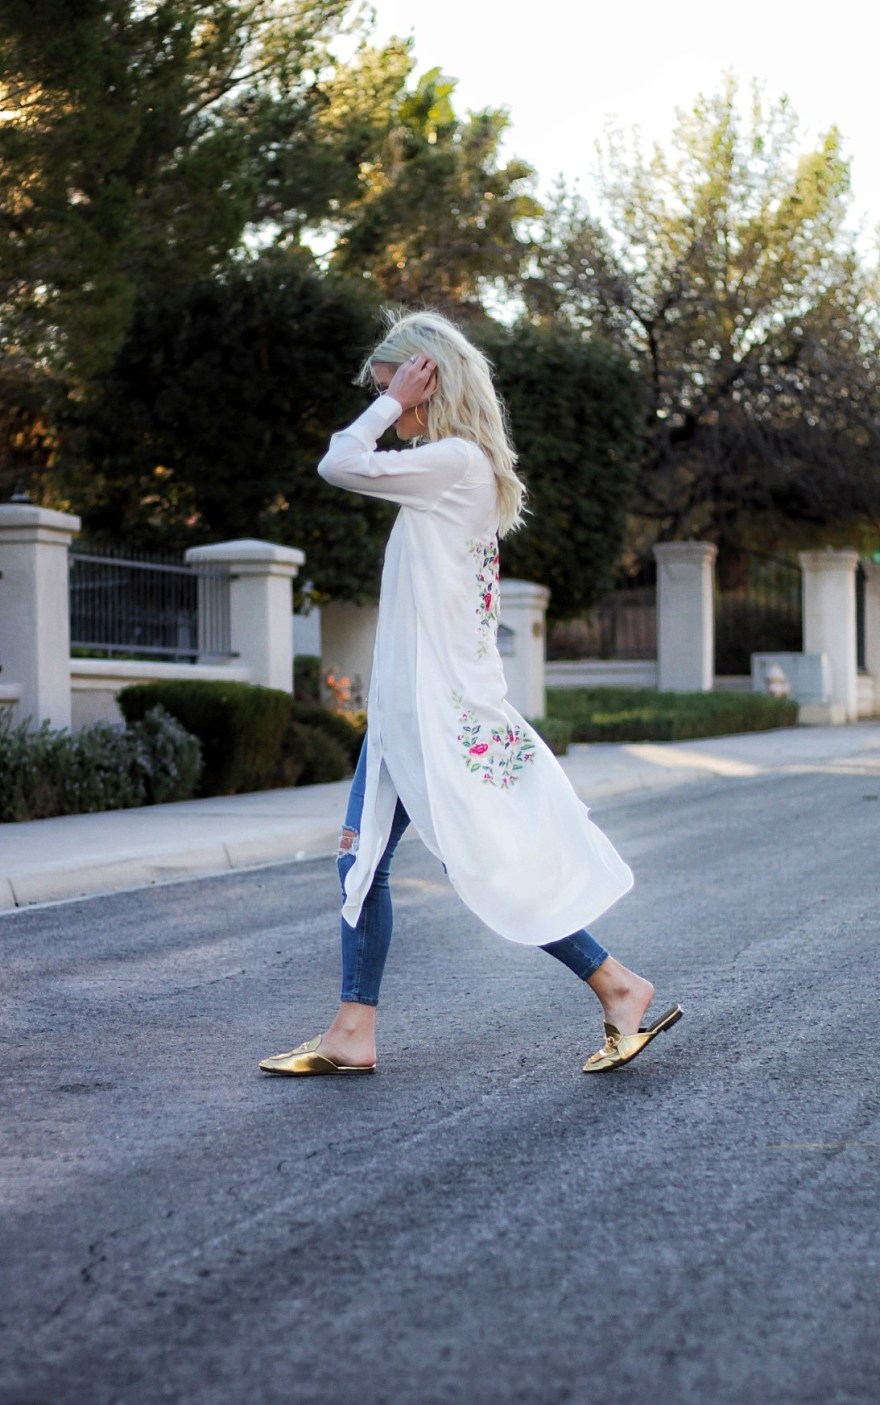 outfit roundup, 2017, 2018 style, fashion blogger, style blog, tunic, robe, mules, gold mules, ger, beauty blogger, blonde hair, Las Vegas blogger, Lindsey Simon, The Nomis Niche, street style, casual style, feminine style, edgy outfit, outfit inspiration, how to wear, outfit ideas,